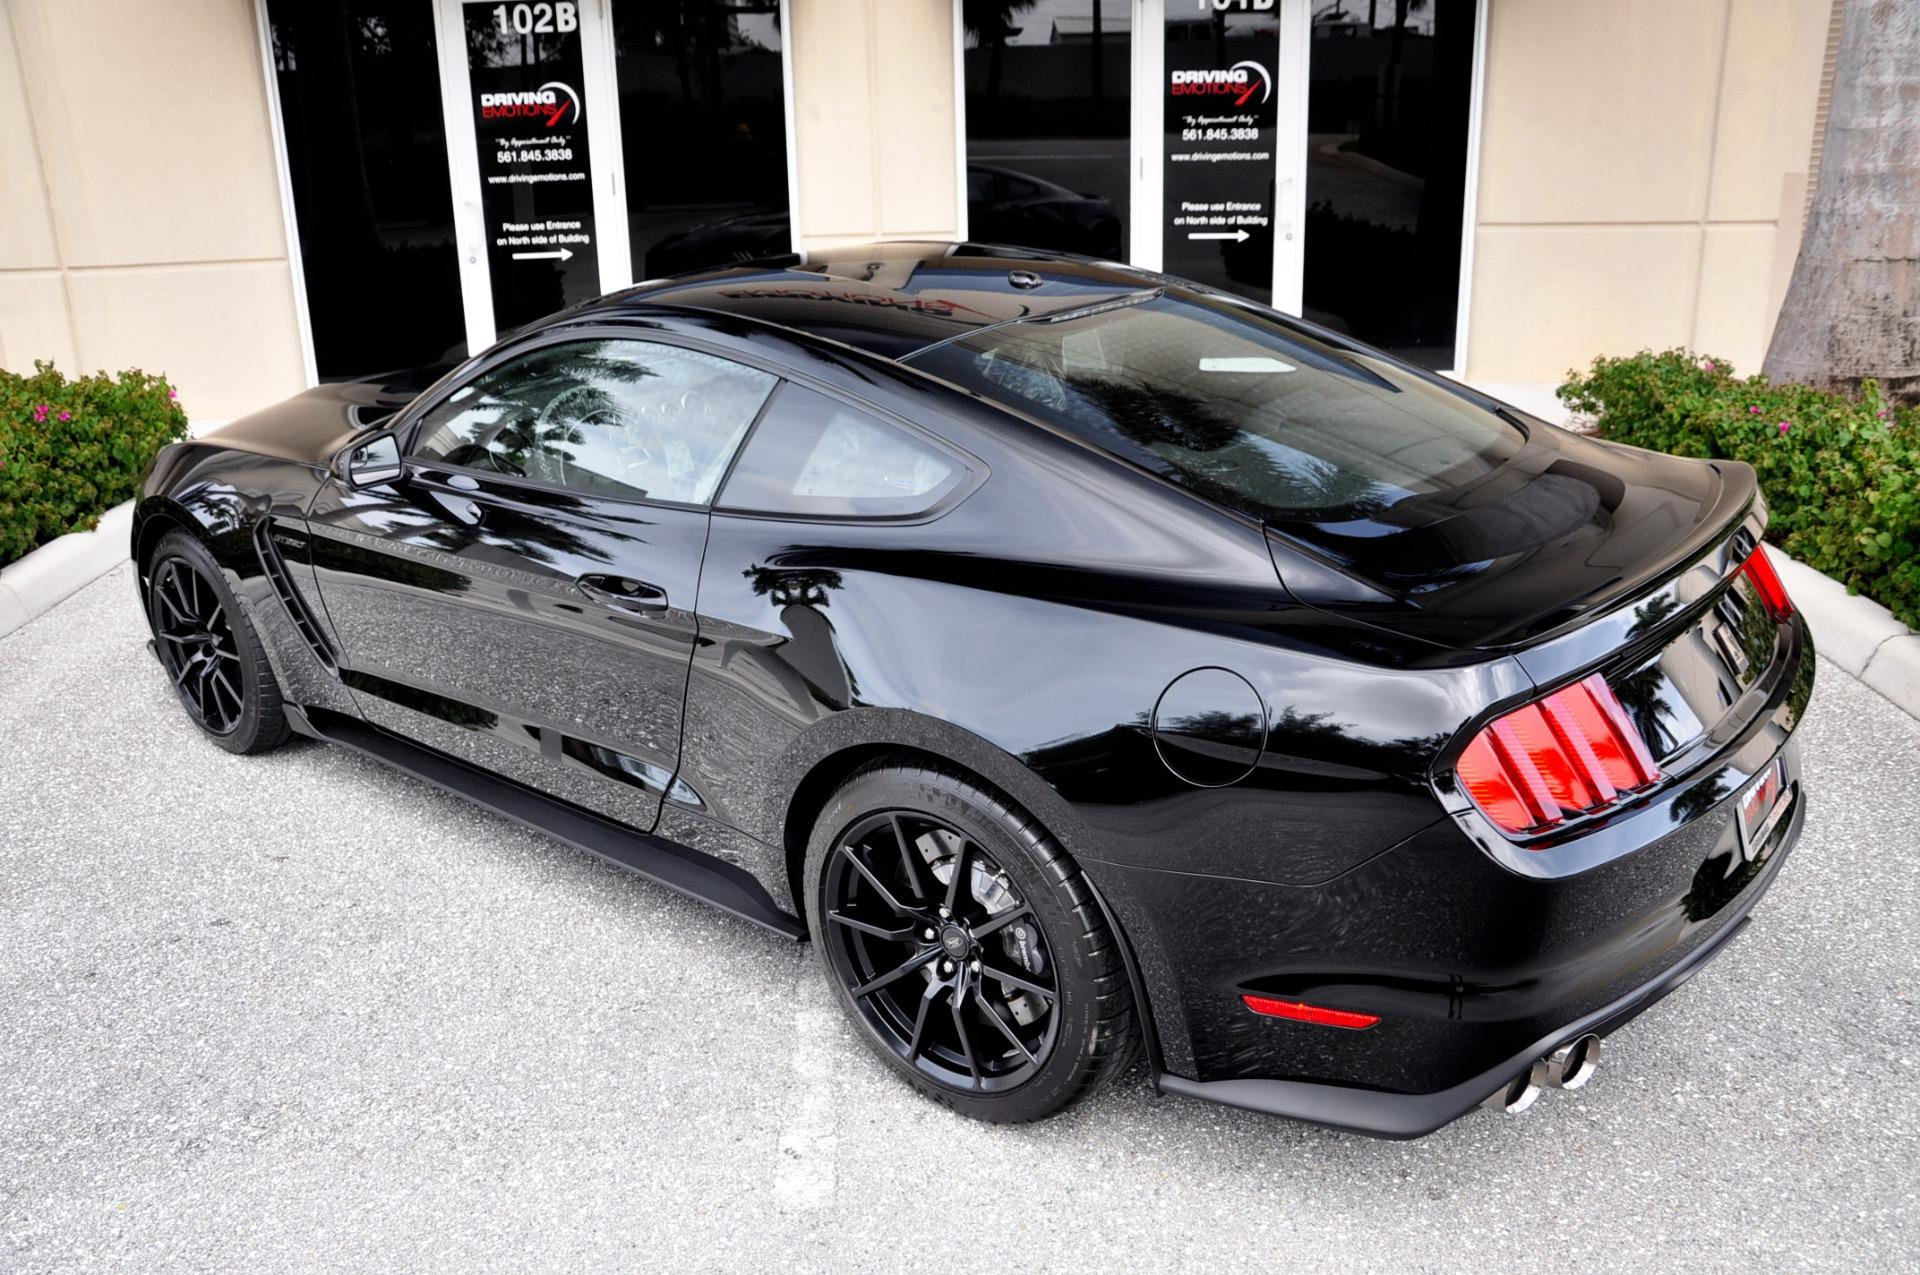 Used 2015 Ford Mustang Shelby GT350 Shelby GT350 Technology Package | Lake Park, FL